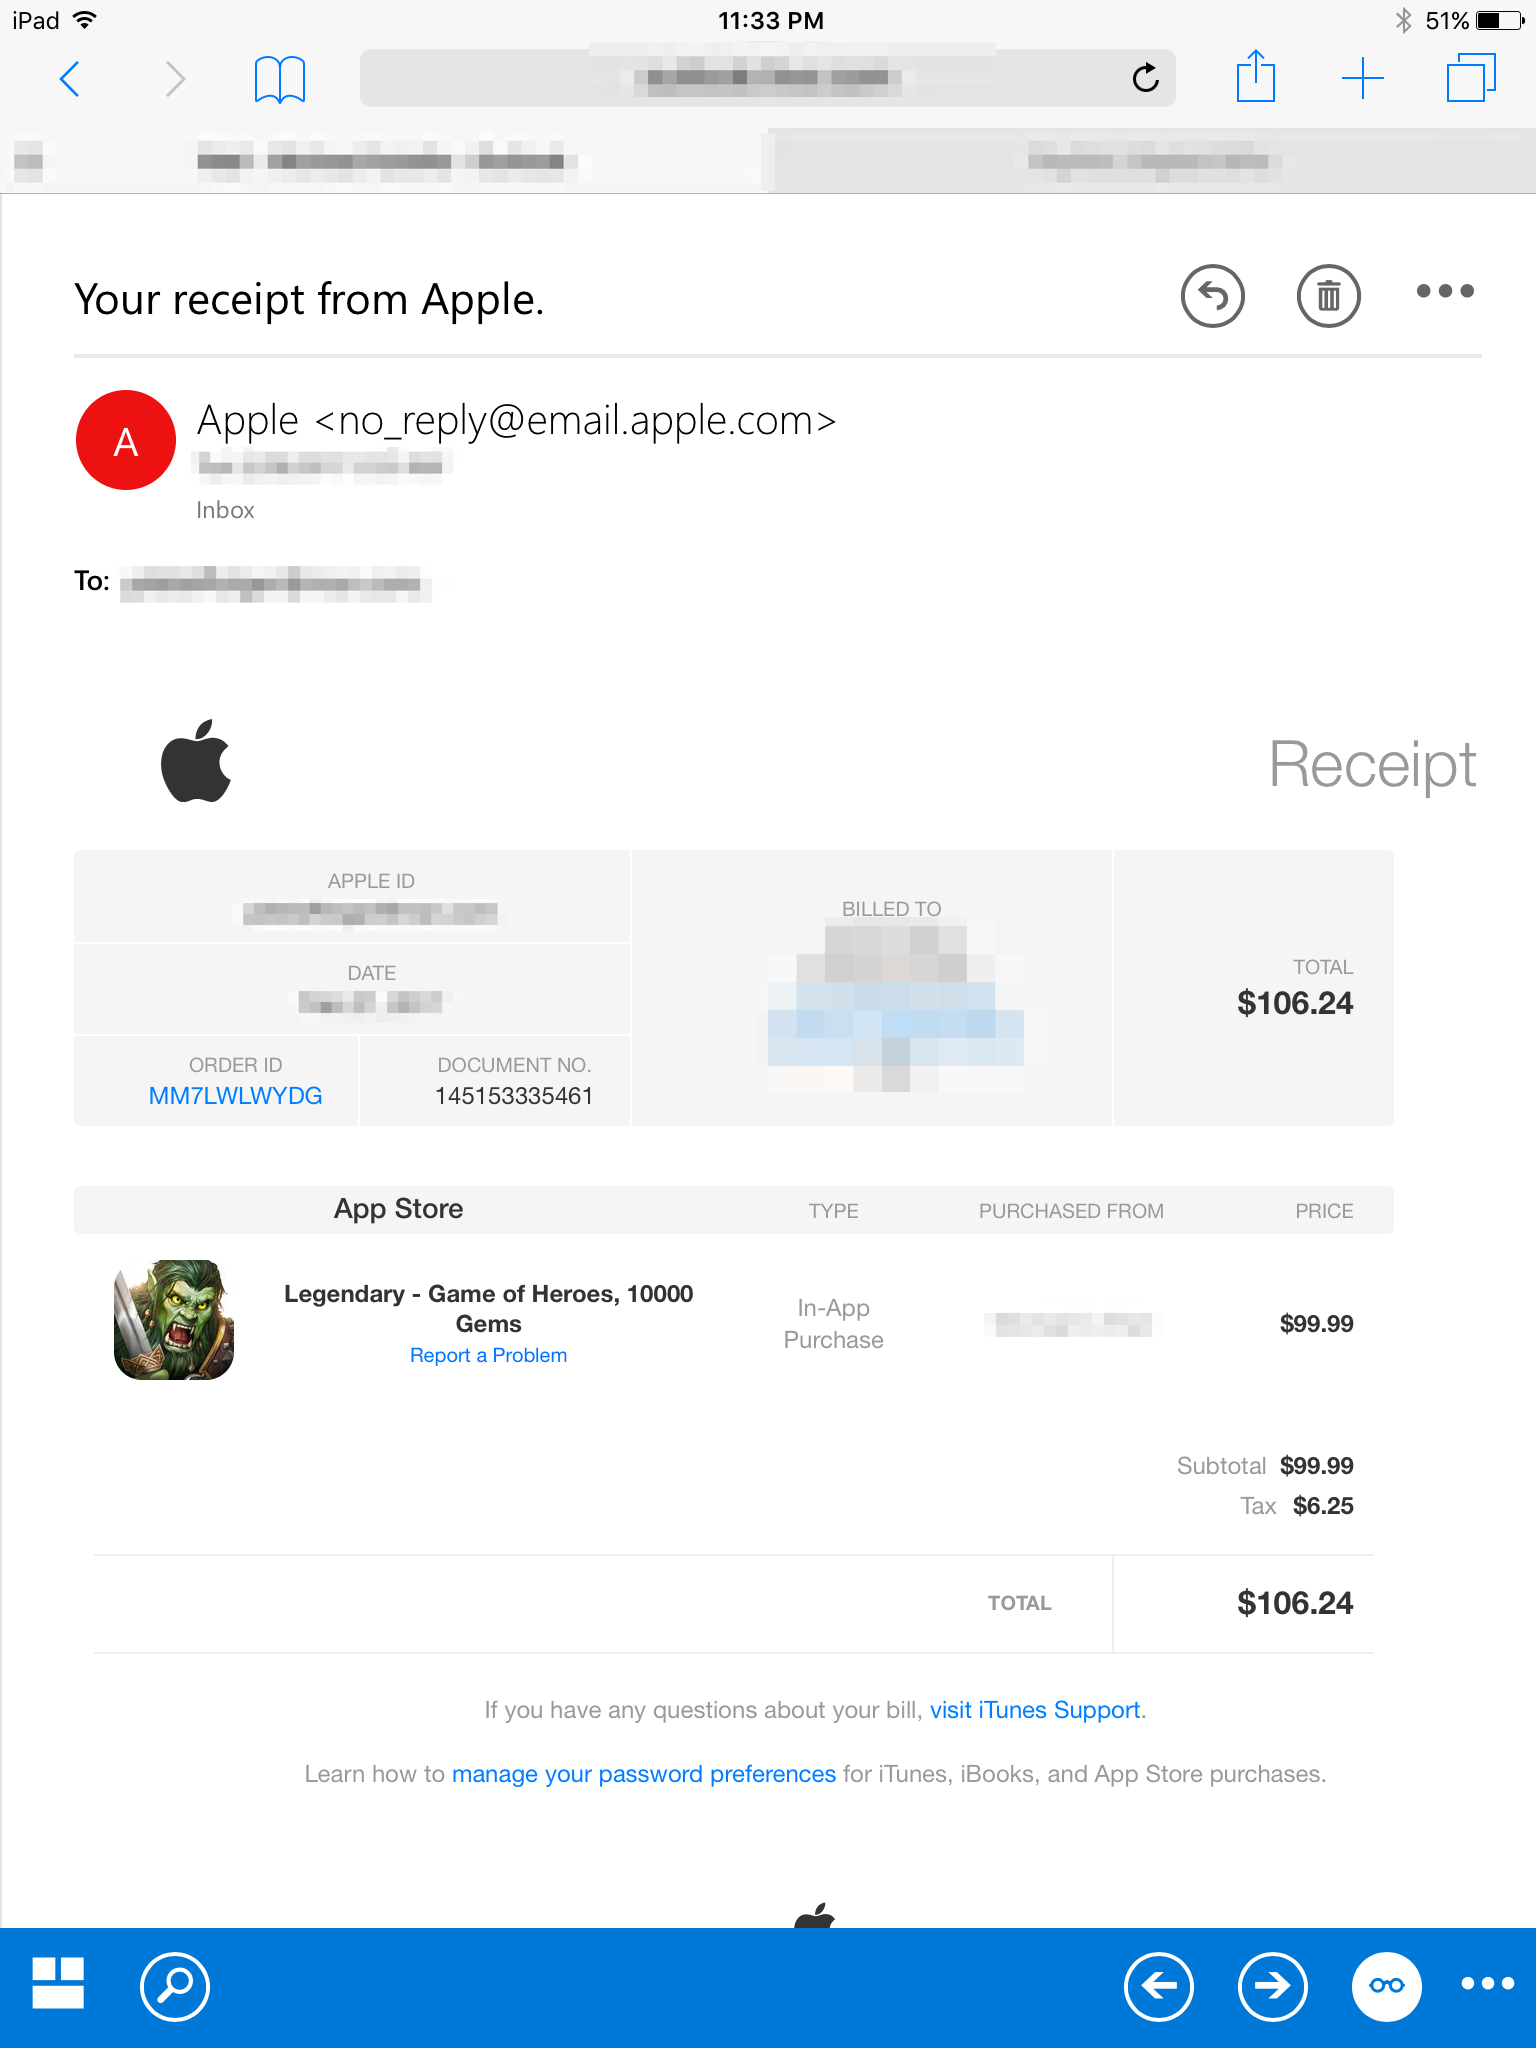 Apple_receipt_image.png